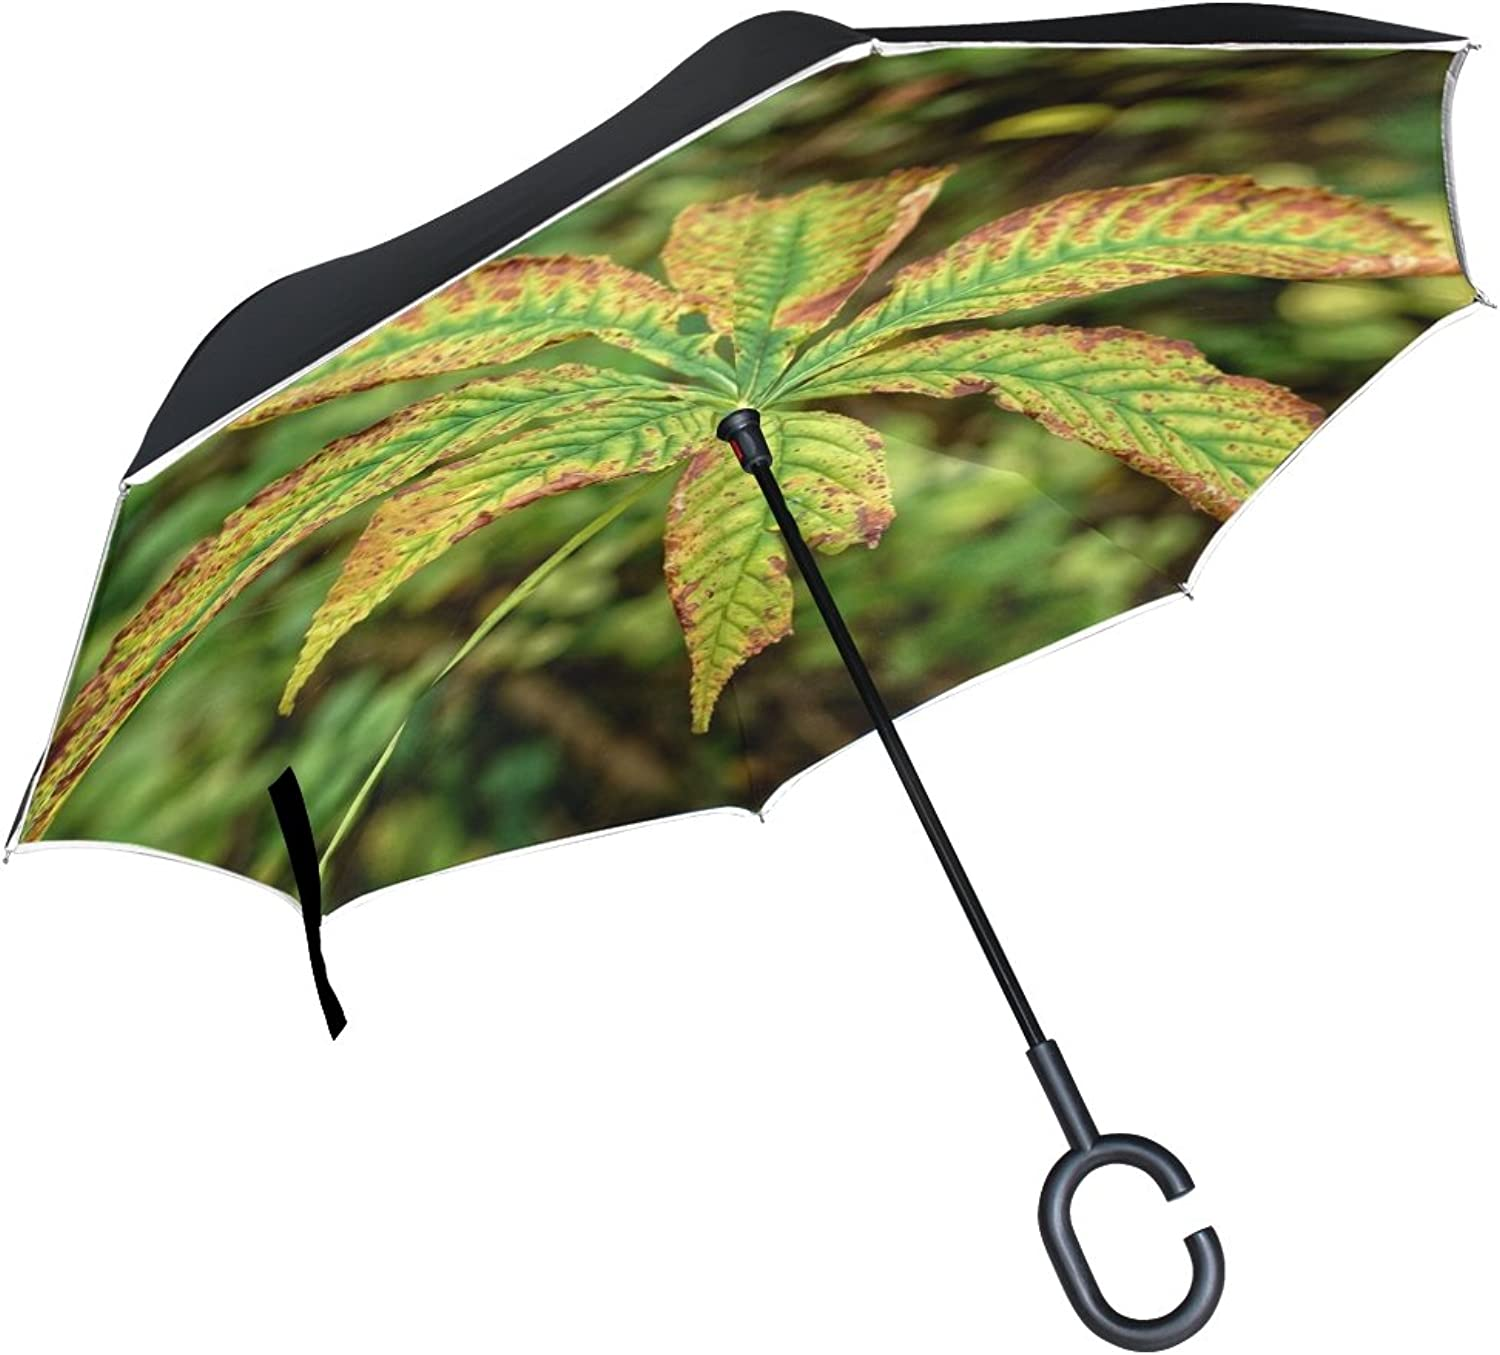 Double Layer Ingreened Autumn Leaf Leaf Autumn Leaves Fall Foliage Umbrellas Reverse Folding Umbrella Windproof Uv Predection Big Straight Umbrella for Car Rain Outdoor with CShaped Handle